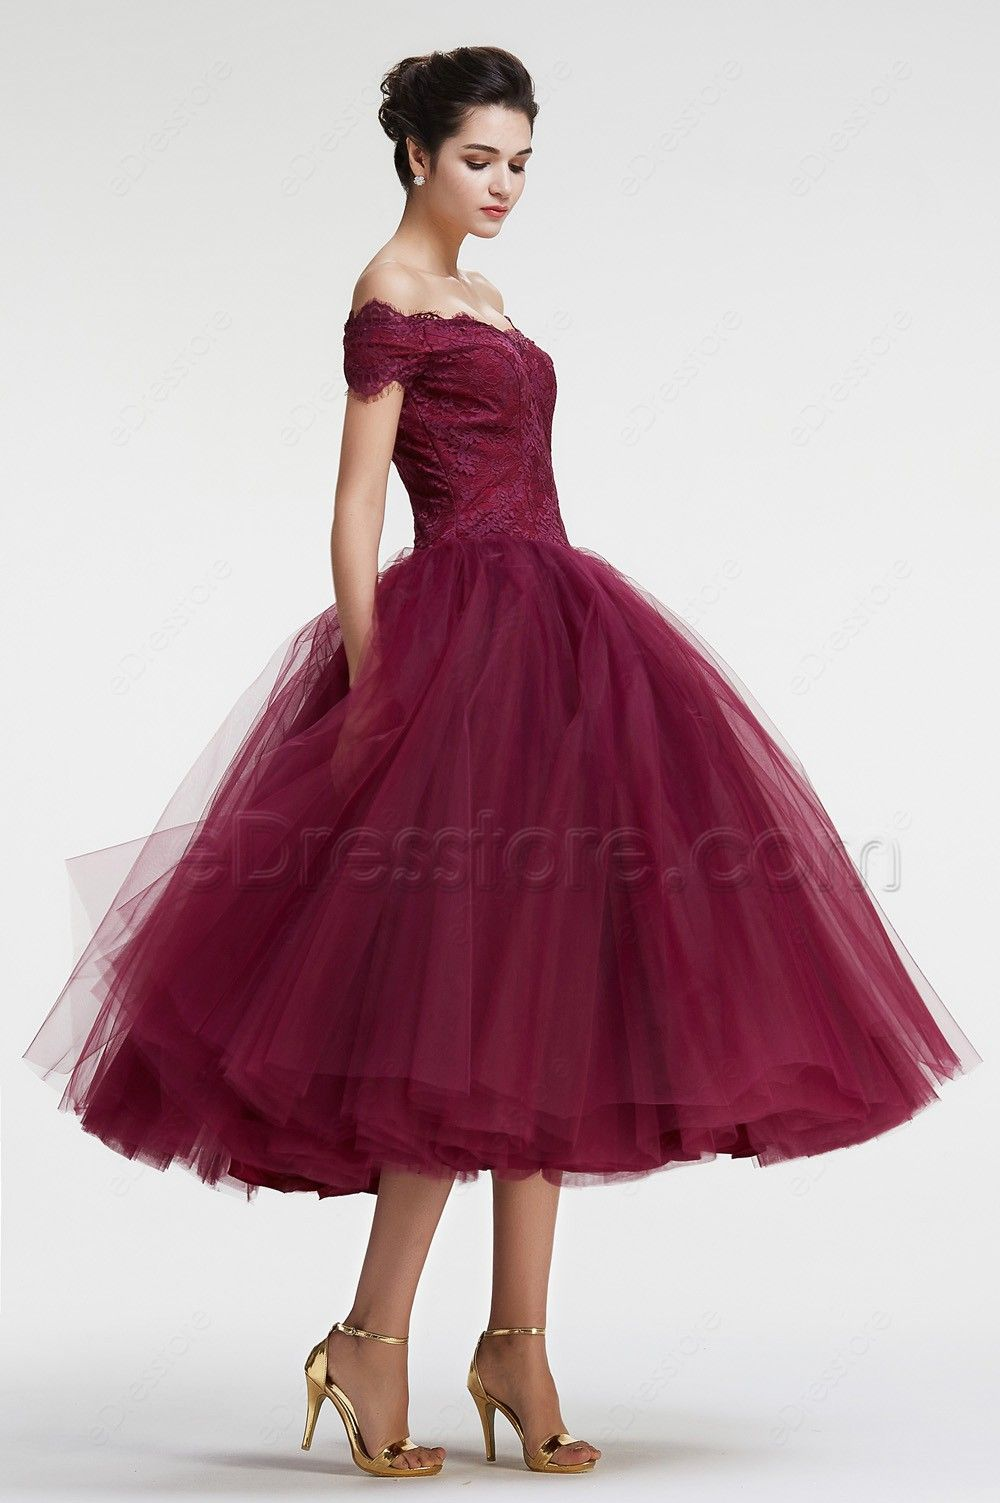 bd509b3ebfaf The burgundy prom dress features off the shoulder neckline with scalloped  lace, basque waist, layered ball gown skirt makes you feel like a princess,  ...